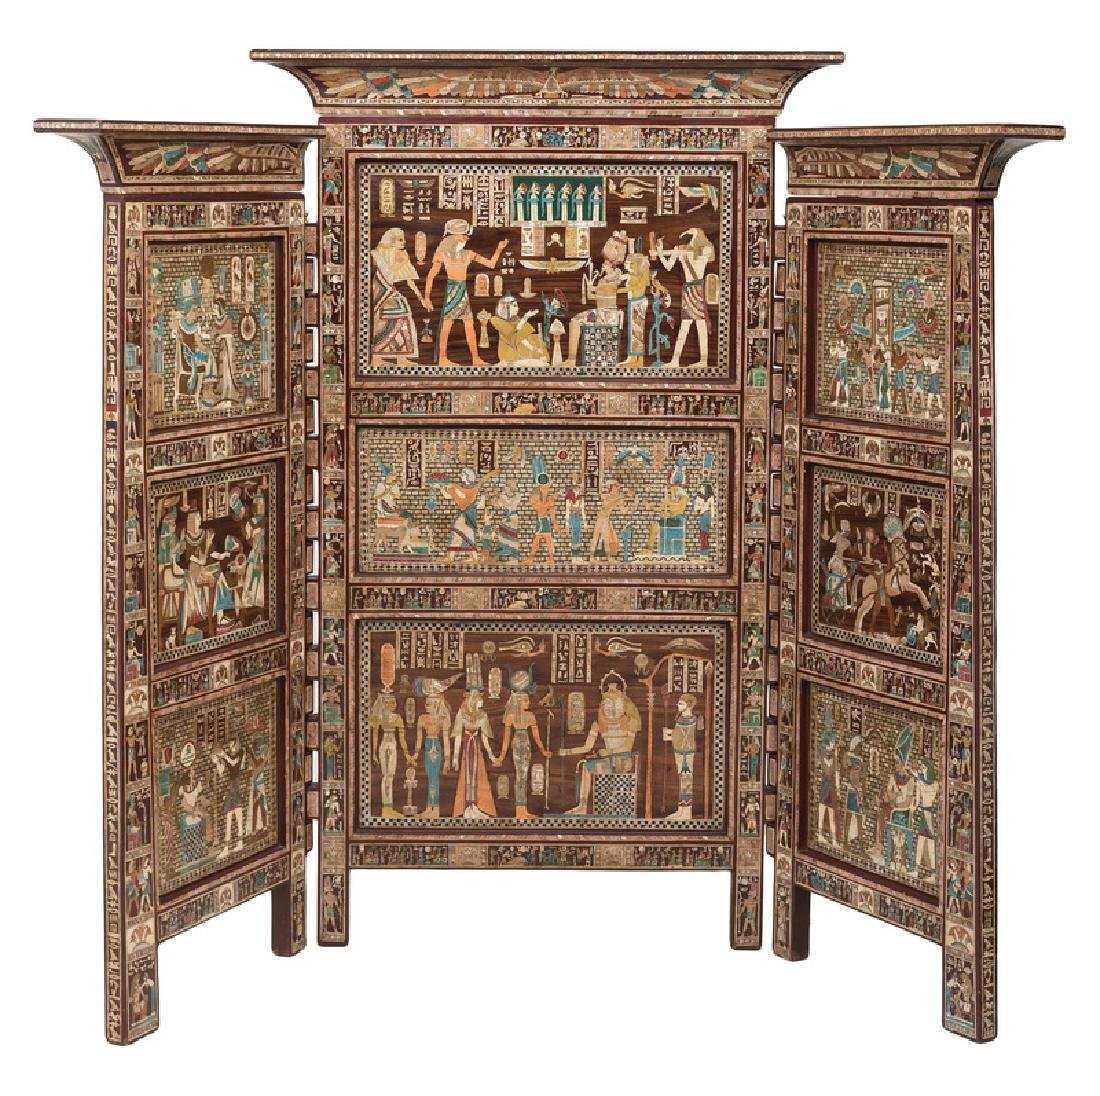 EGYPTIANESQUE CARVED & INLAID THREE-PANEL SCREEN